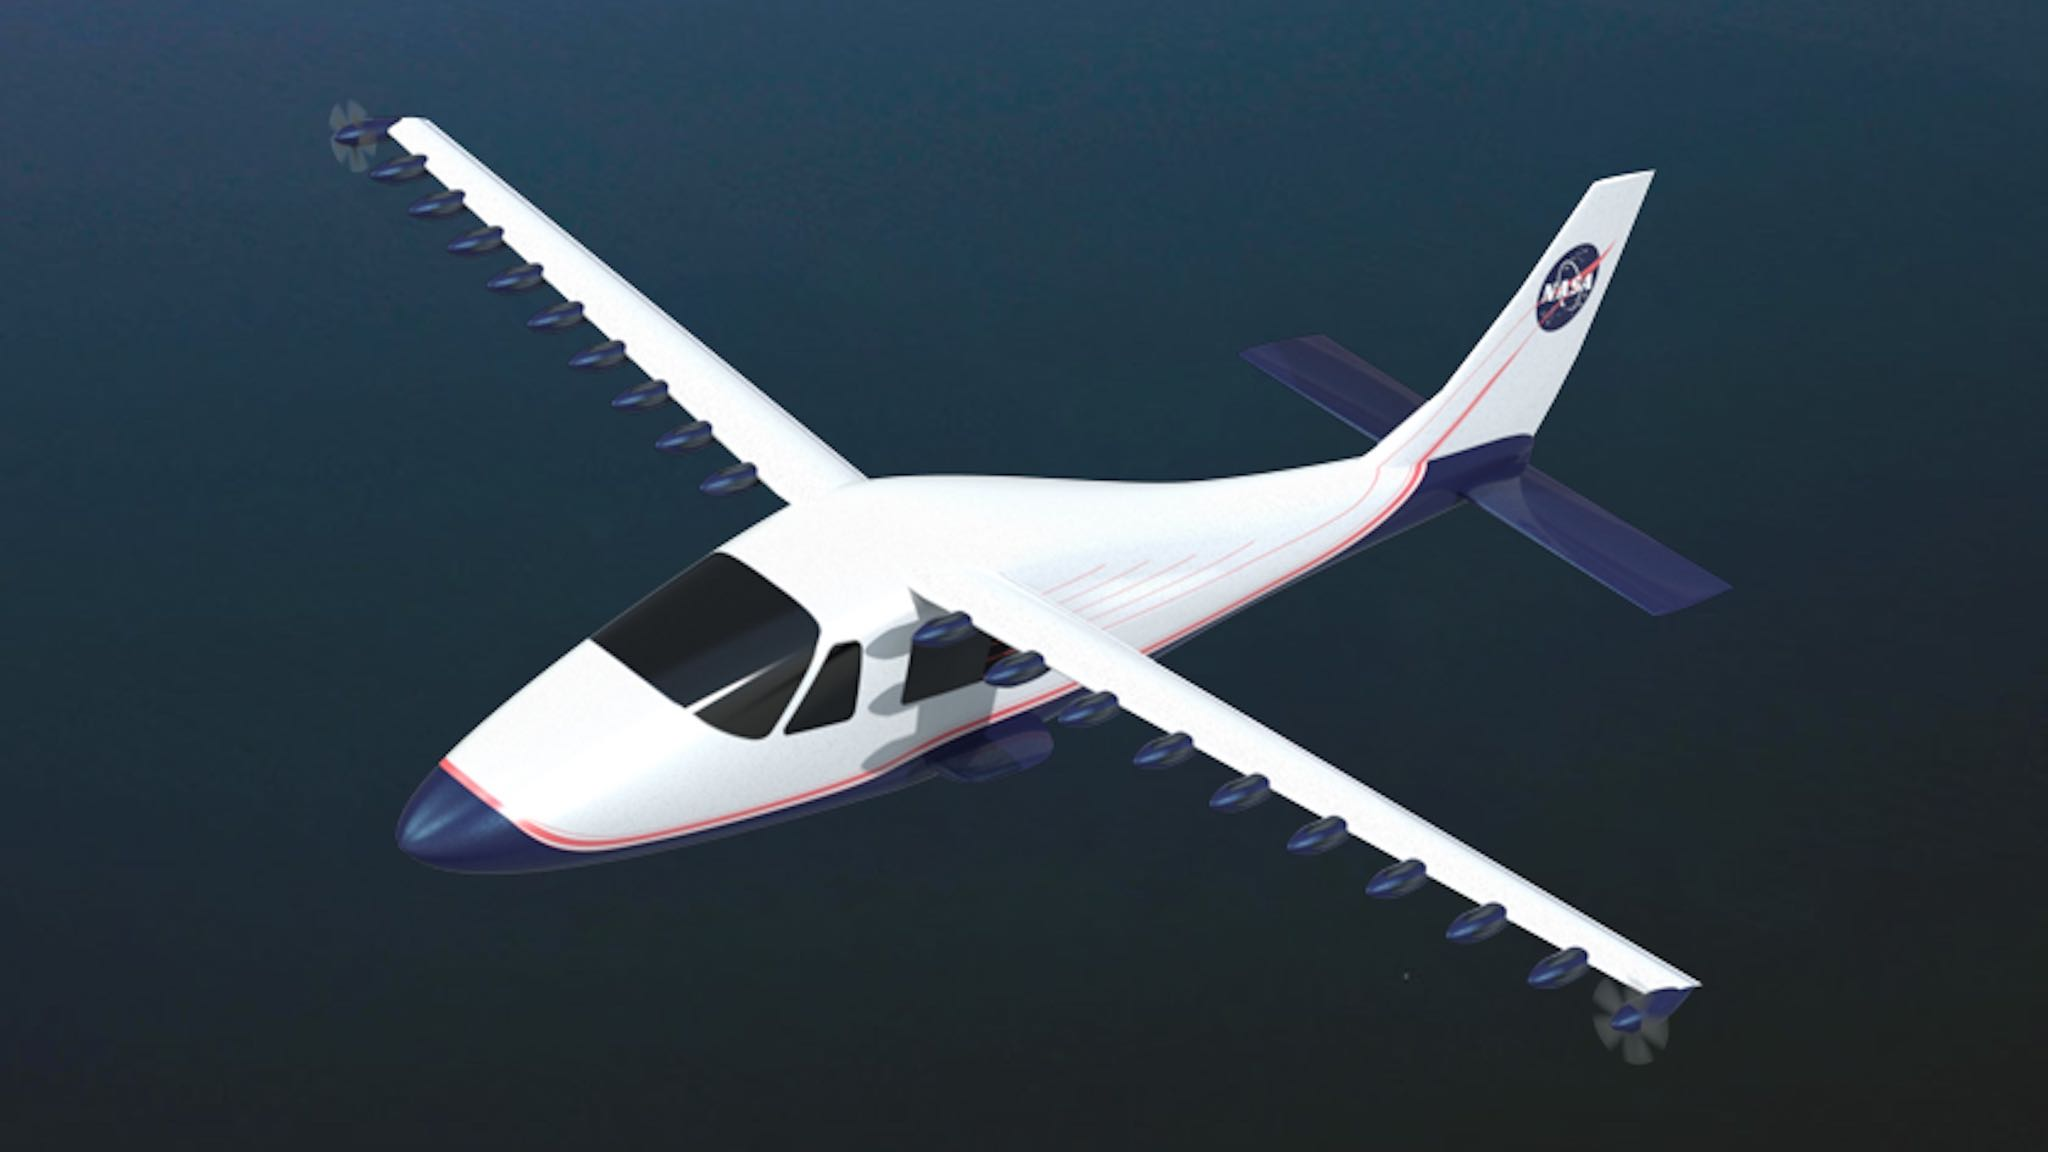 With the recent advances in technology and design aircraft concepts - Leaptech_demonstrator_concept